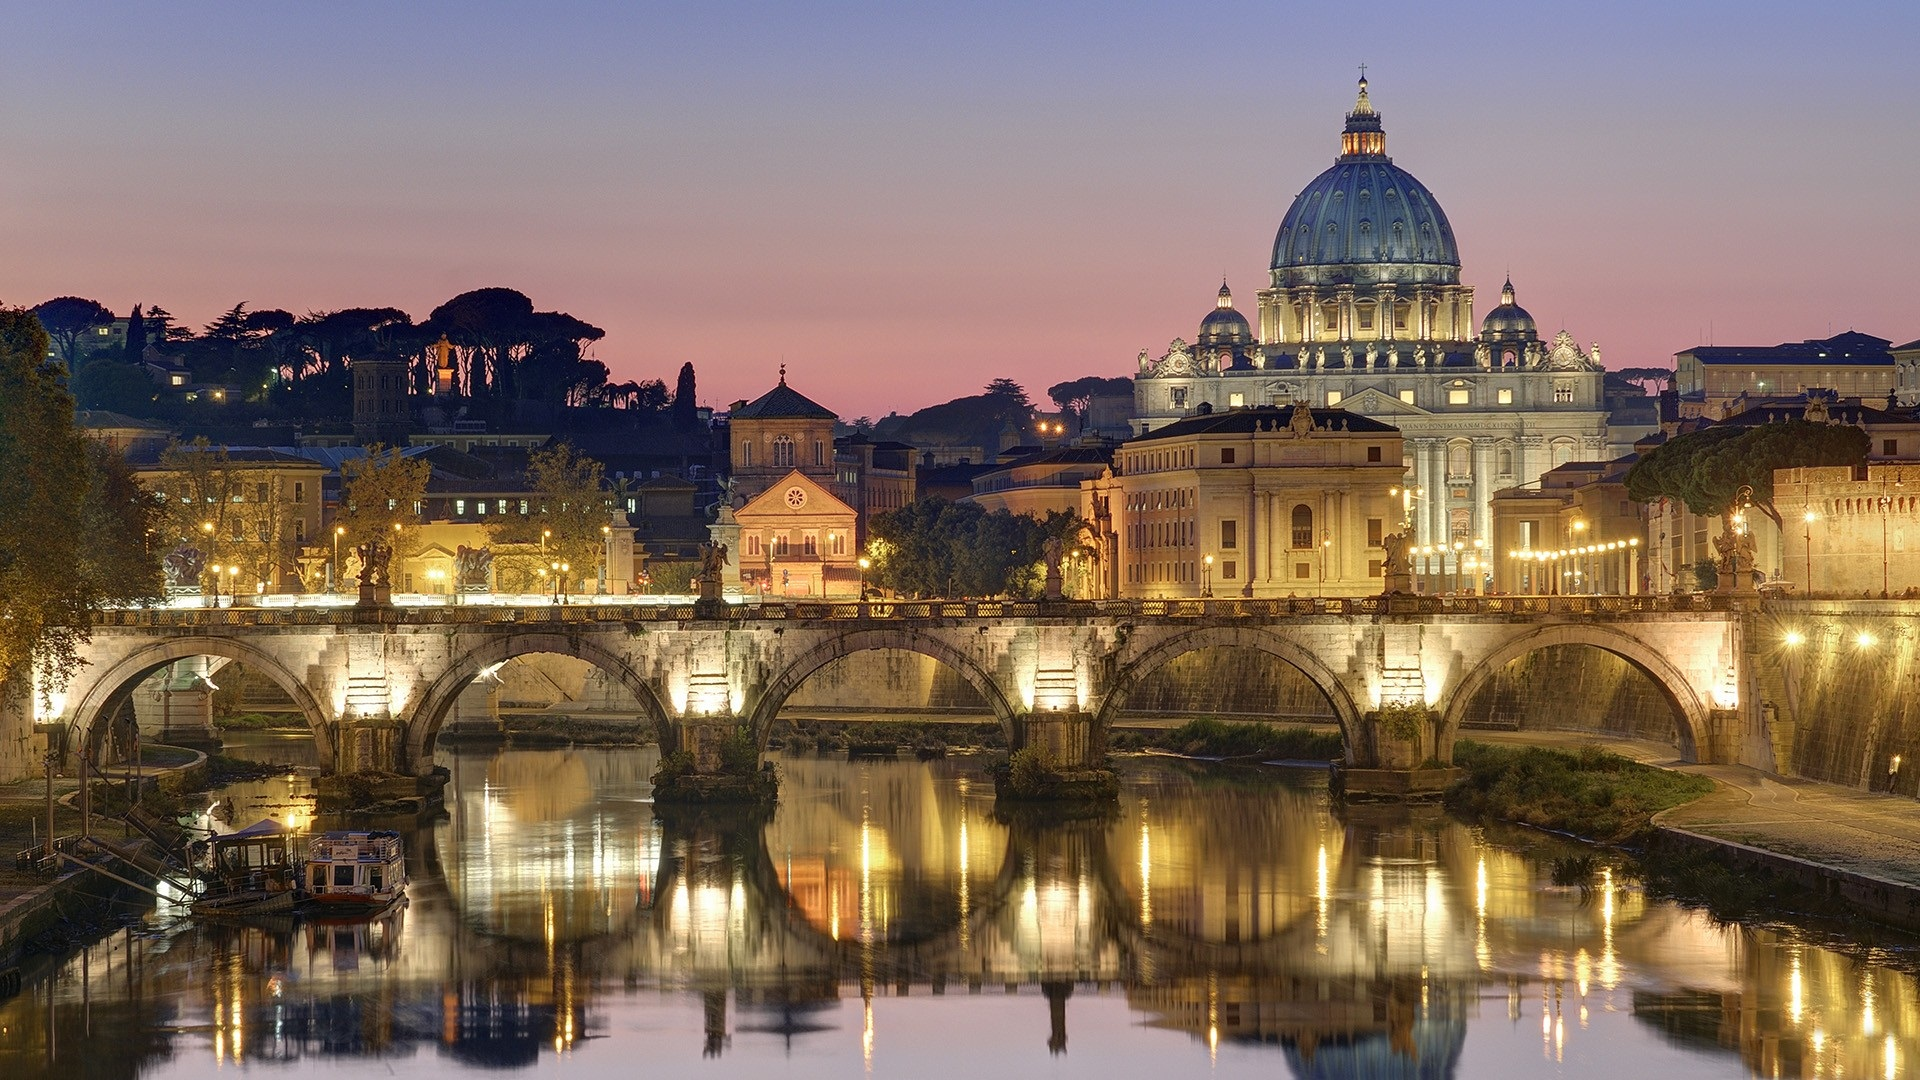 Vatican city wallpapers best wallpapers for In the city wallpaper